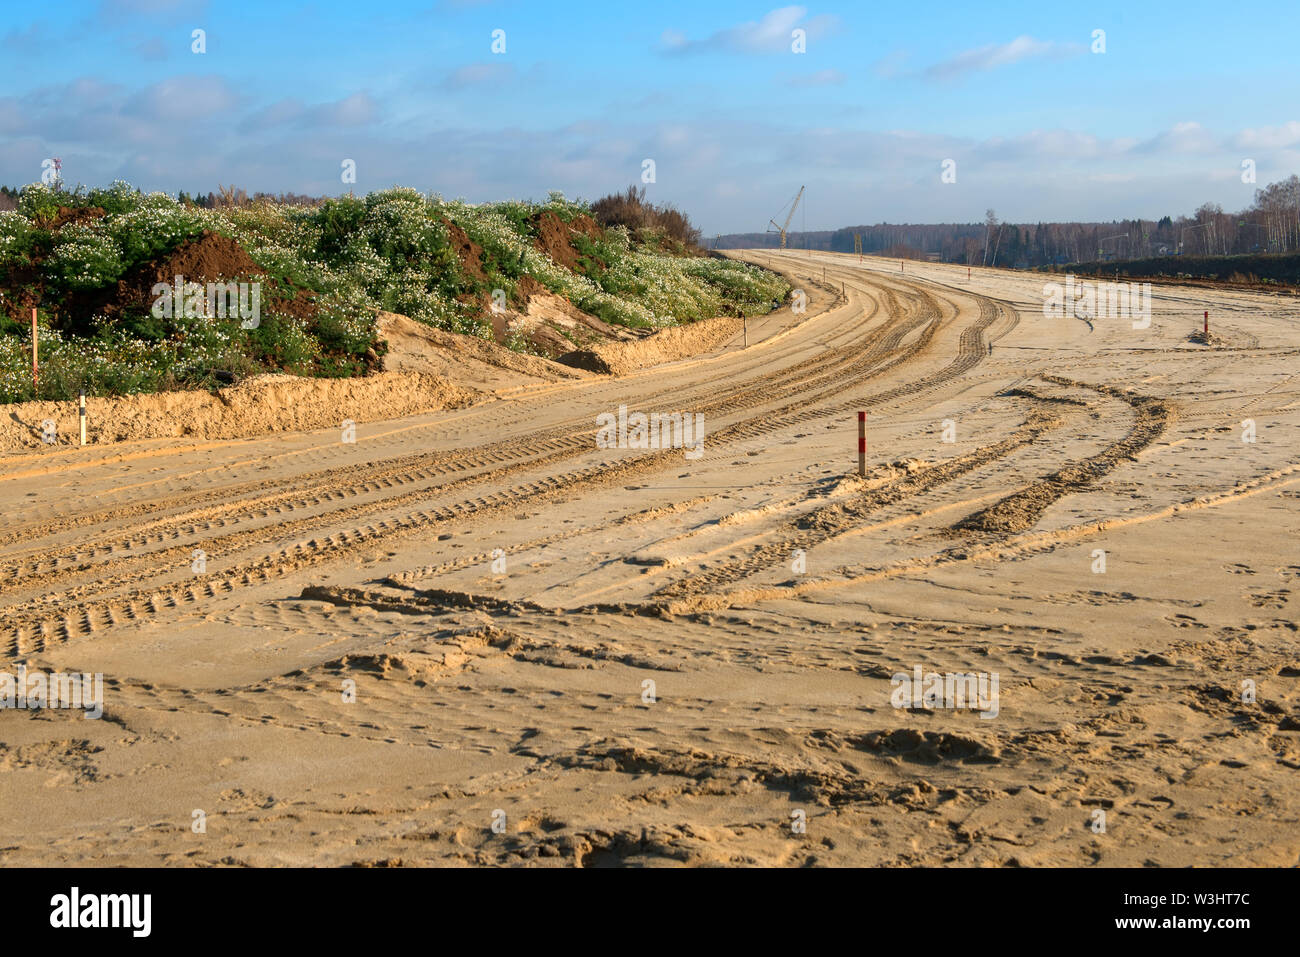 Construction of a new road. The marked space is covered with sand and rammed - Stock Image